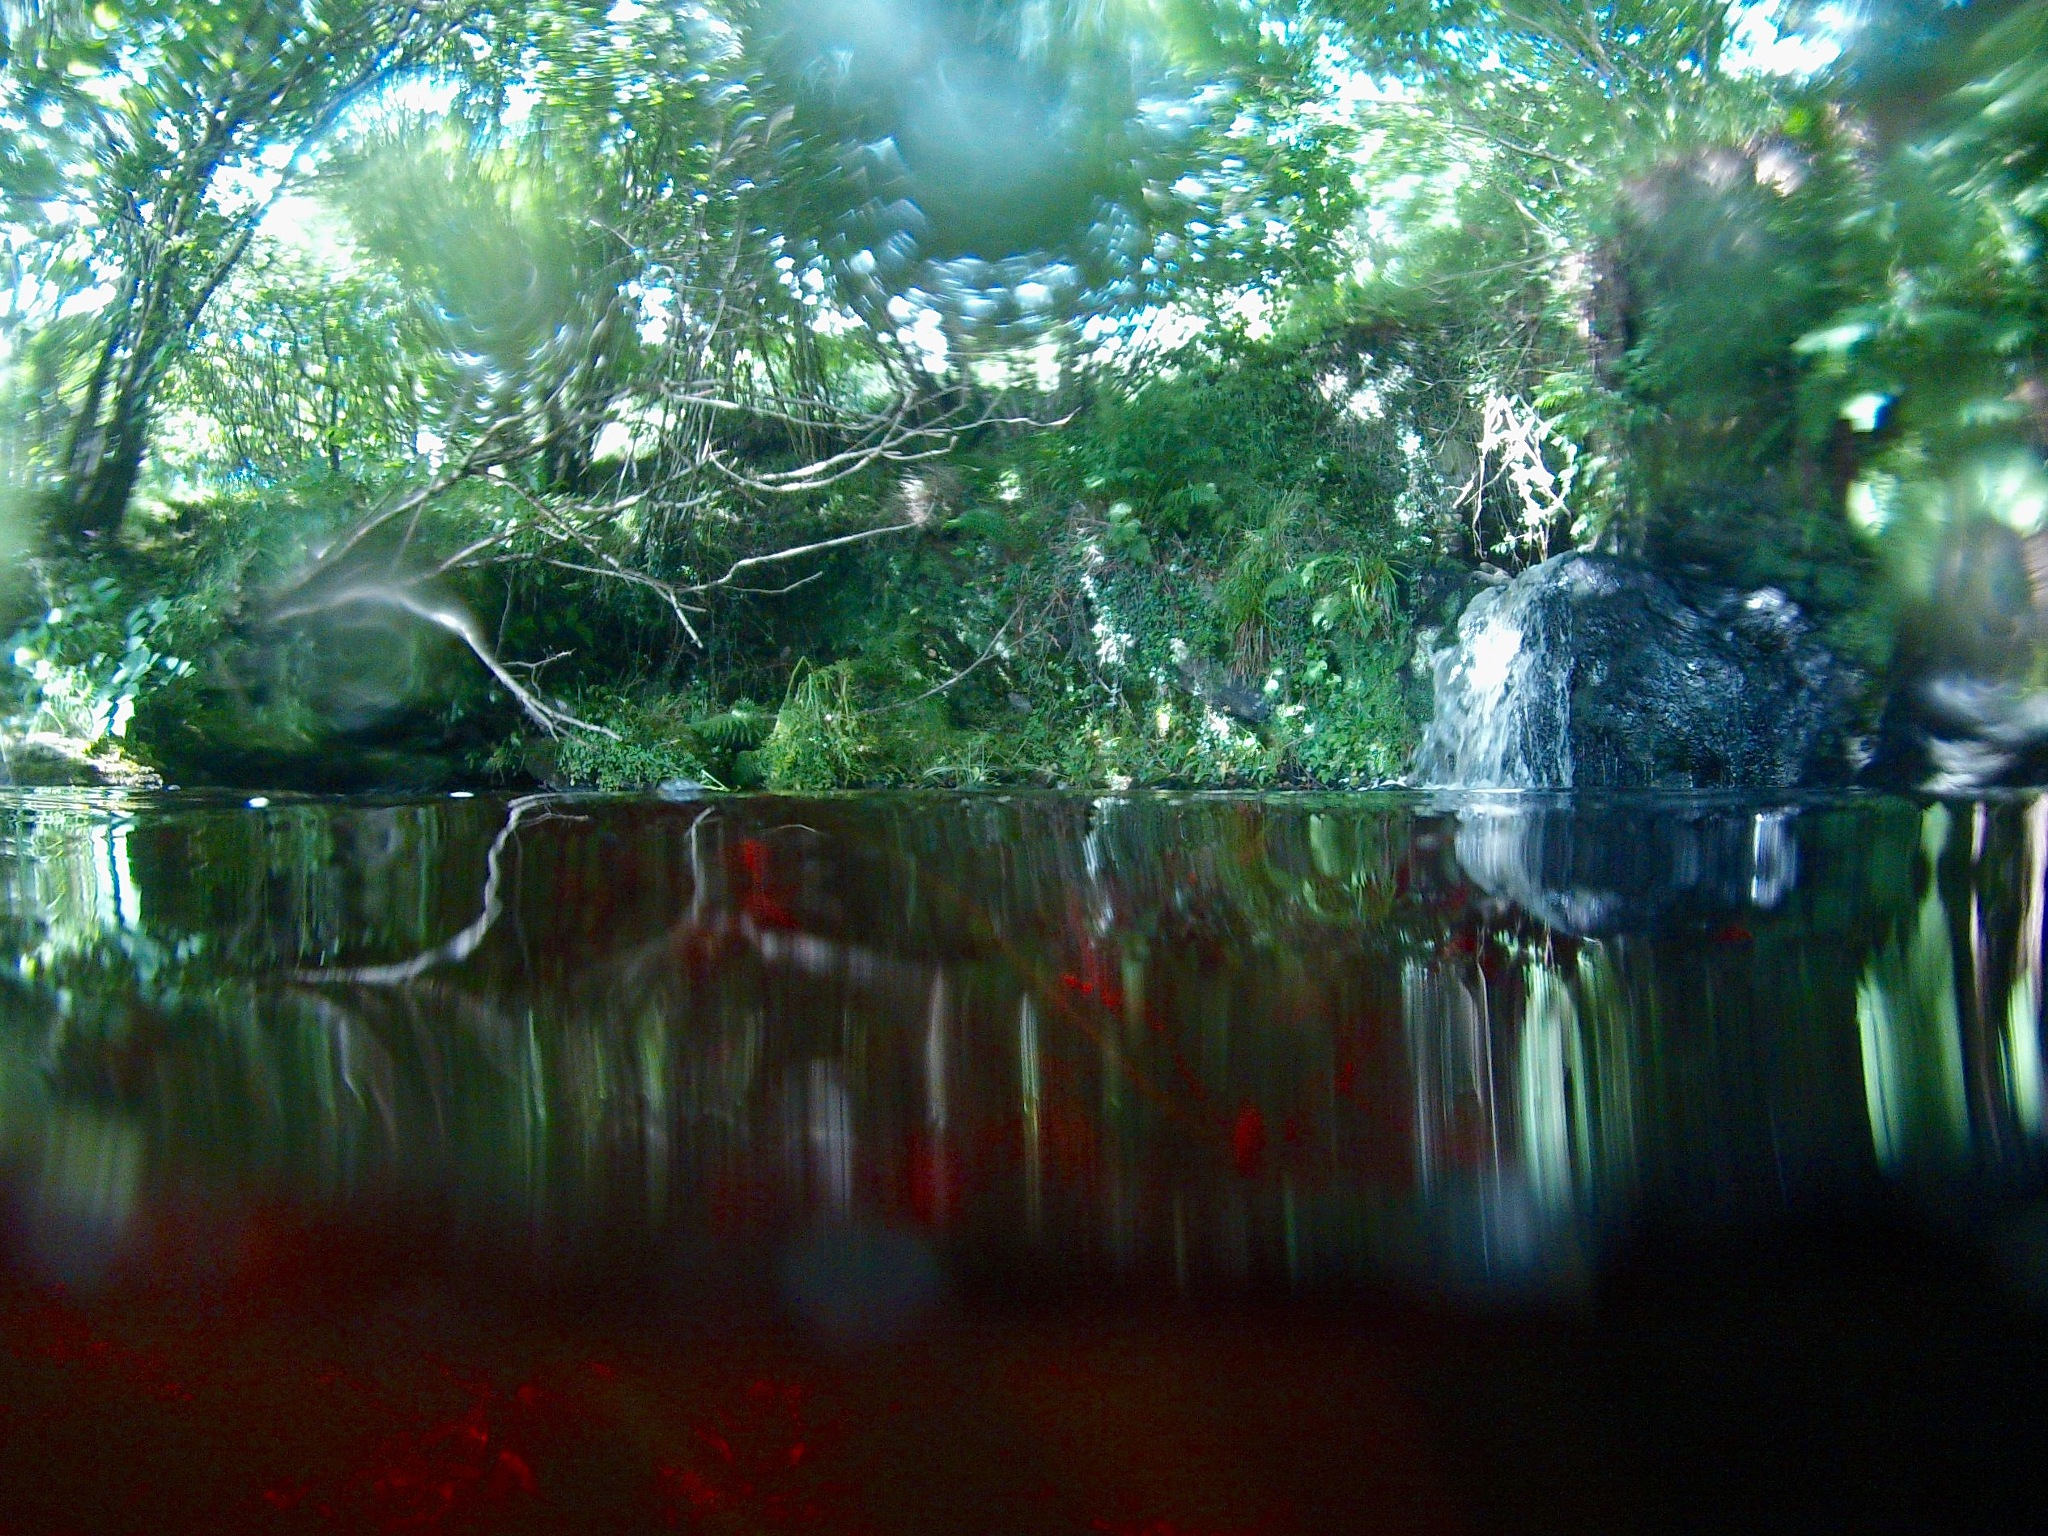 One more look at thr mythical Ruby Pool... by Steven James Homewood